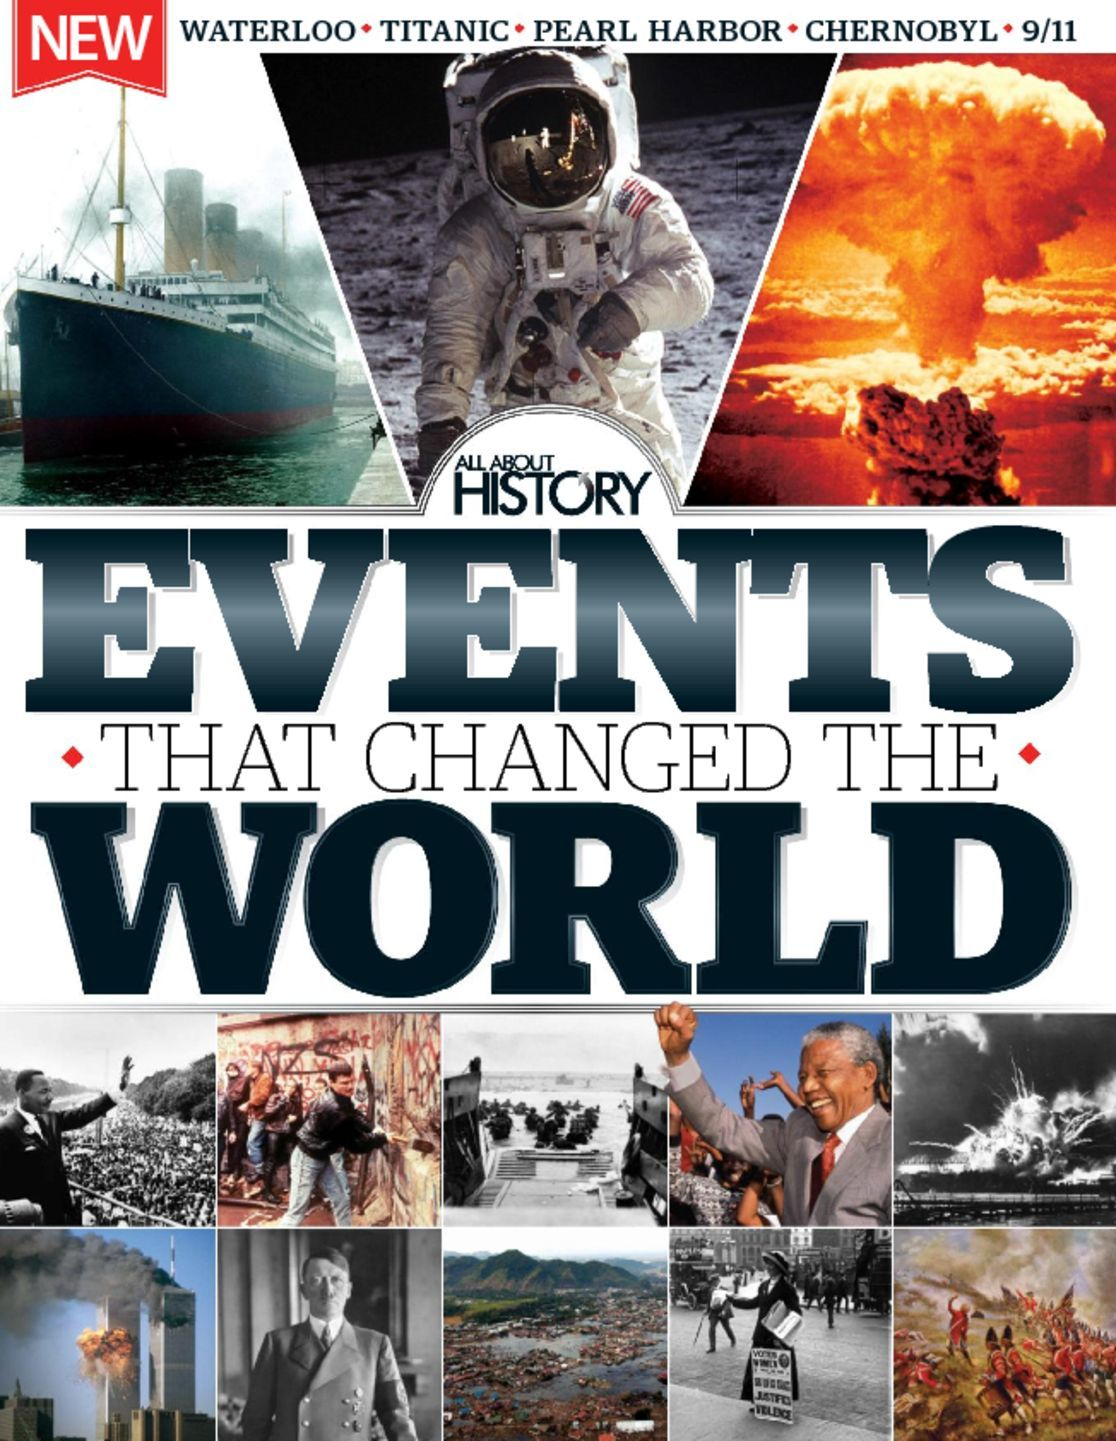 All About History Events That Changed The World Digital